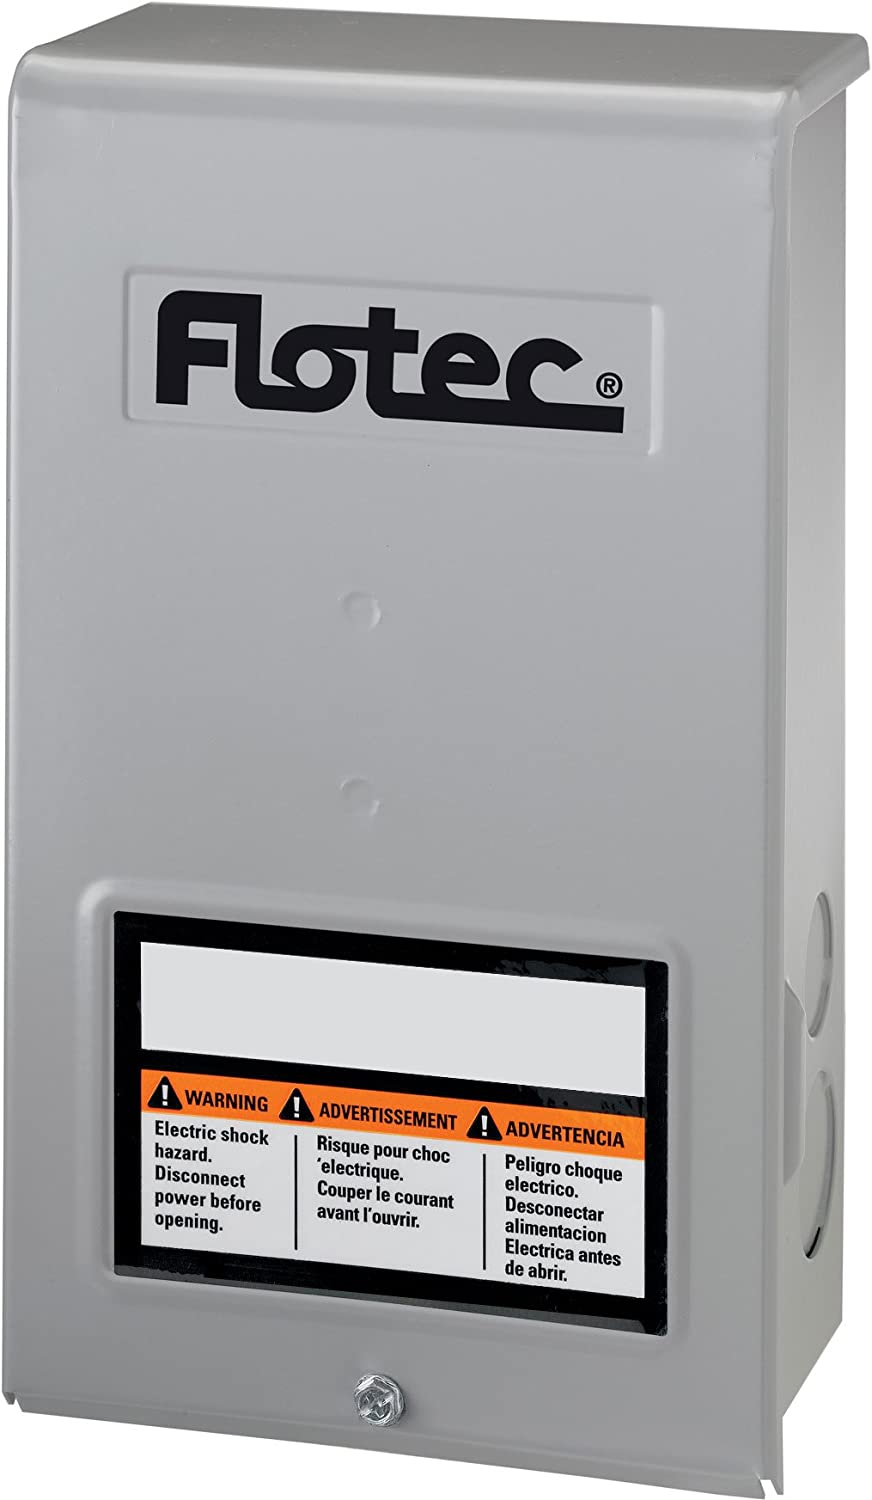 Flotec FP217-810 Parts2O Pentek Heavy Duty Submersible Well Pump Control Box, 230 V, 1/2 Hp, No 4